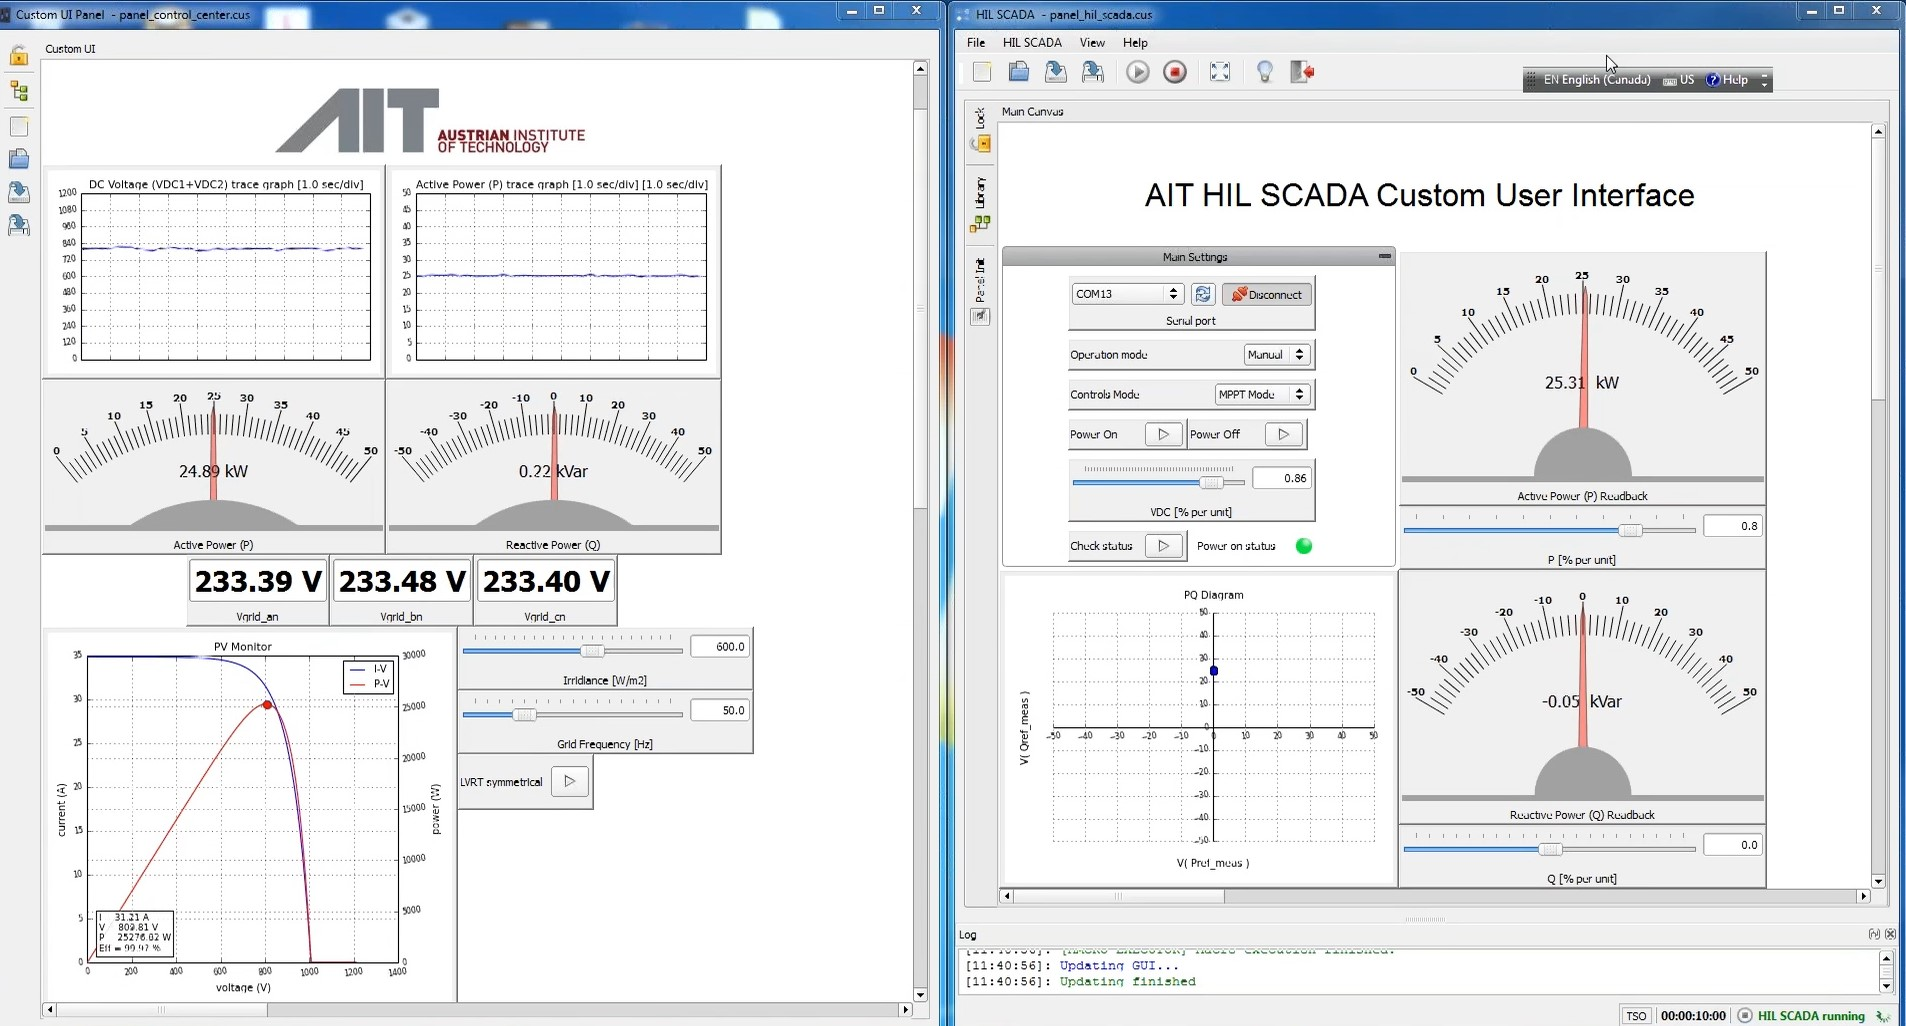 AIT HIL SCADA Custom user interface